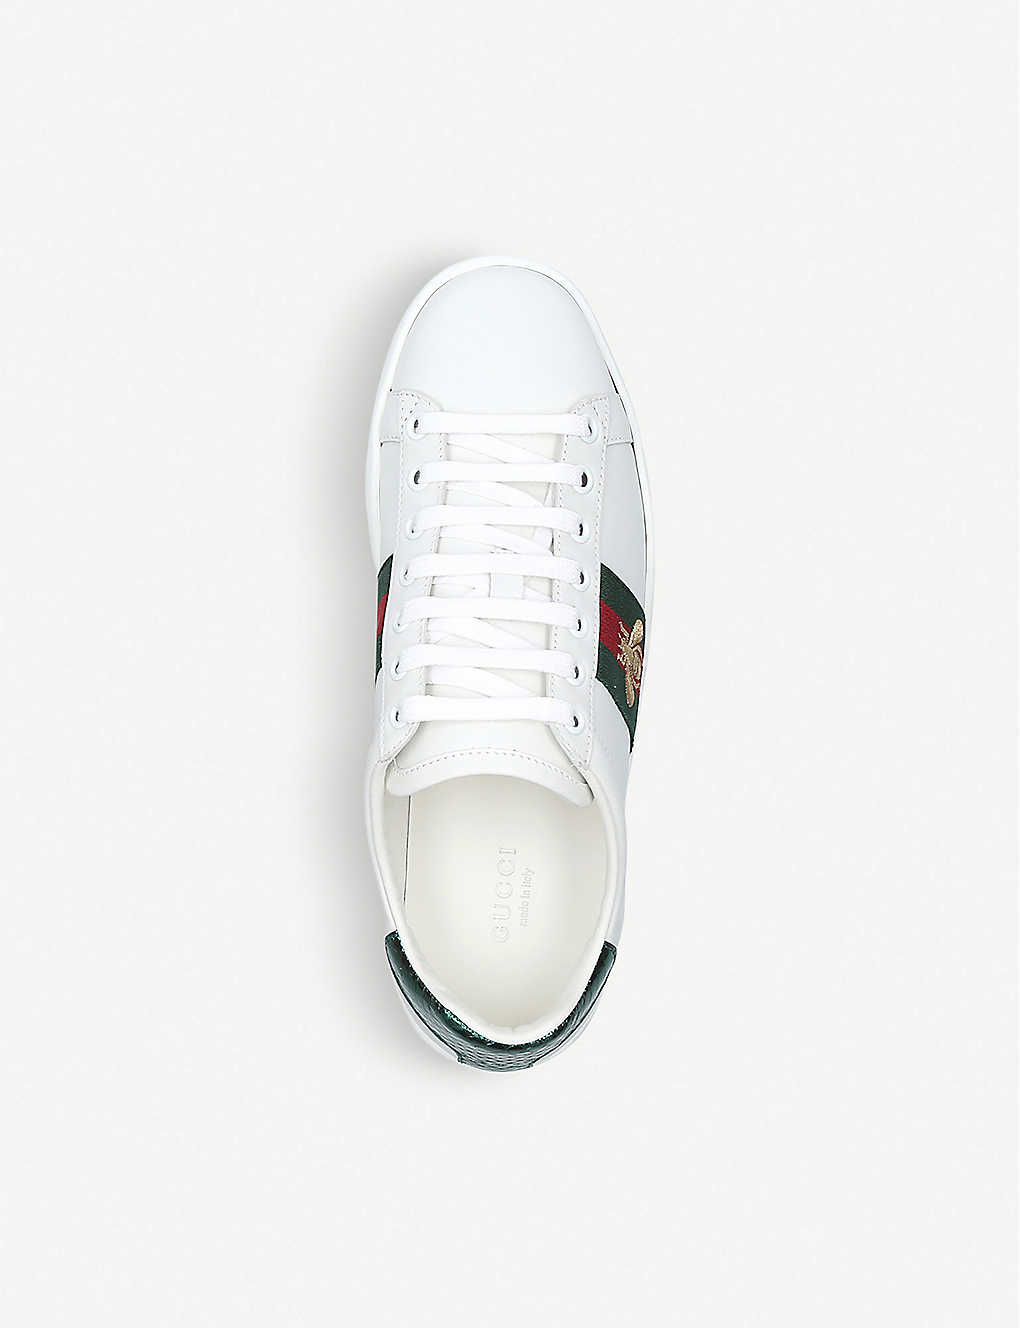 463a7307b4e ... Ladies New Ace bee-embroidered leather trainers - Whitered ...